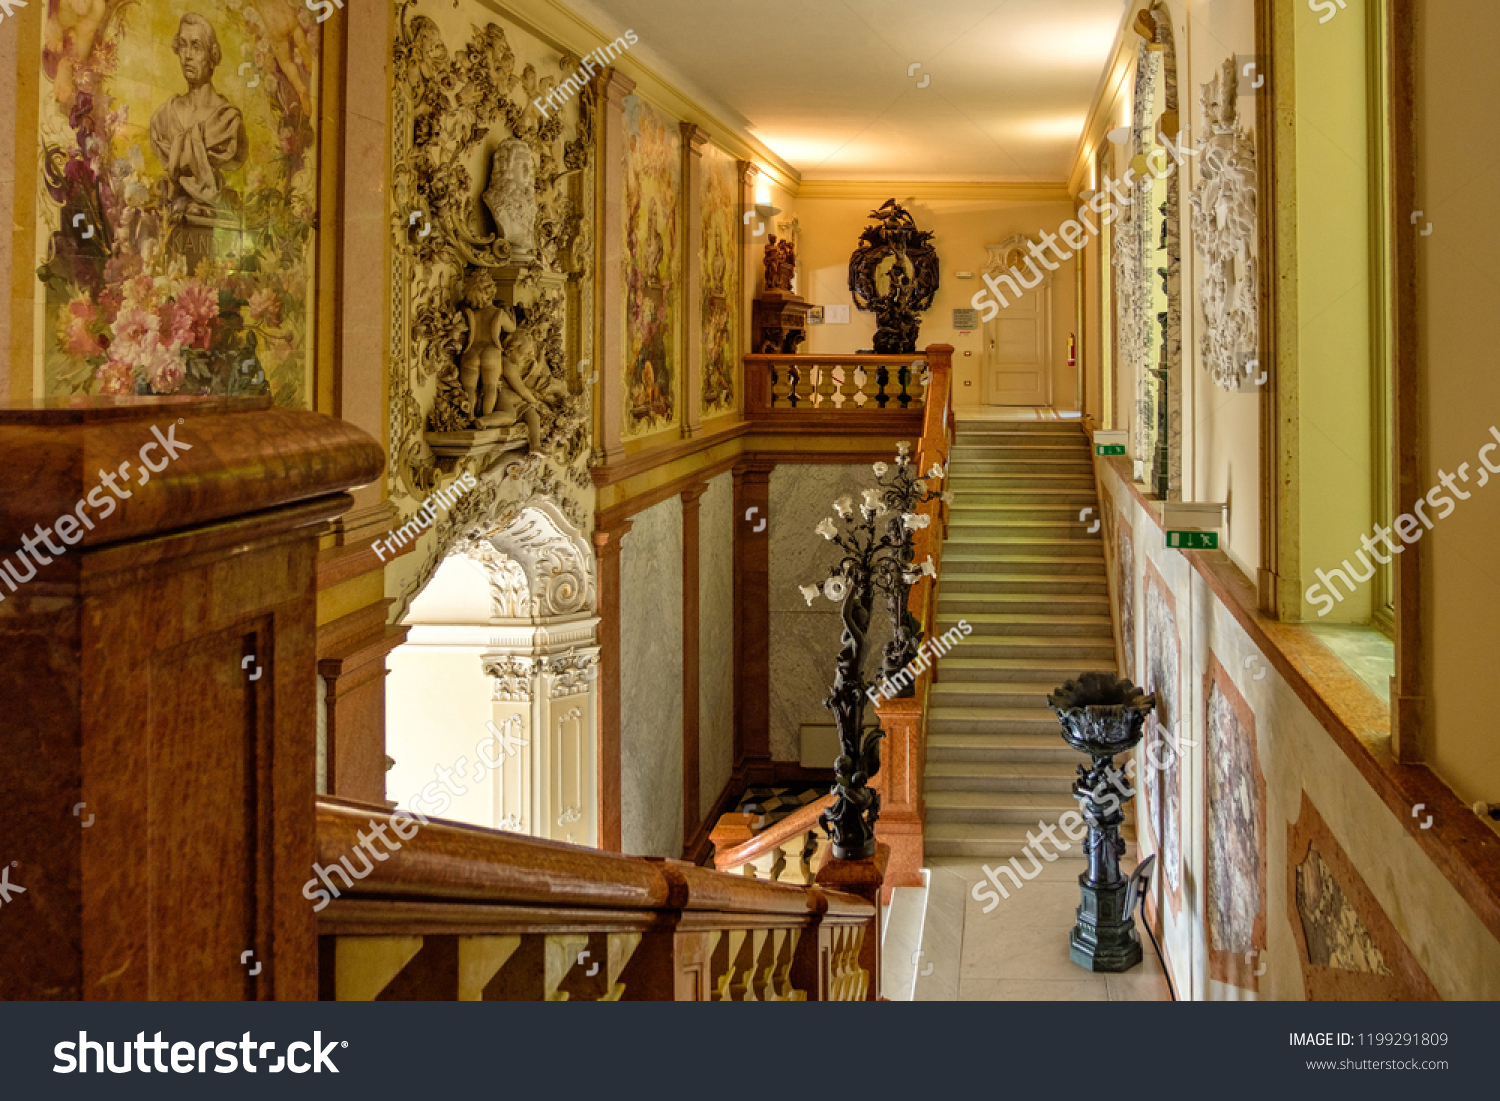 Lombardy italy august 03 2018 villa monastero interior with old architecture objects